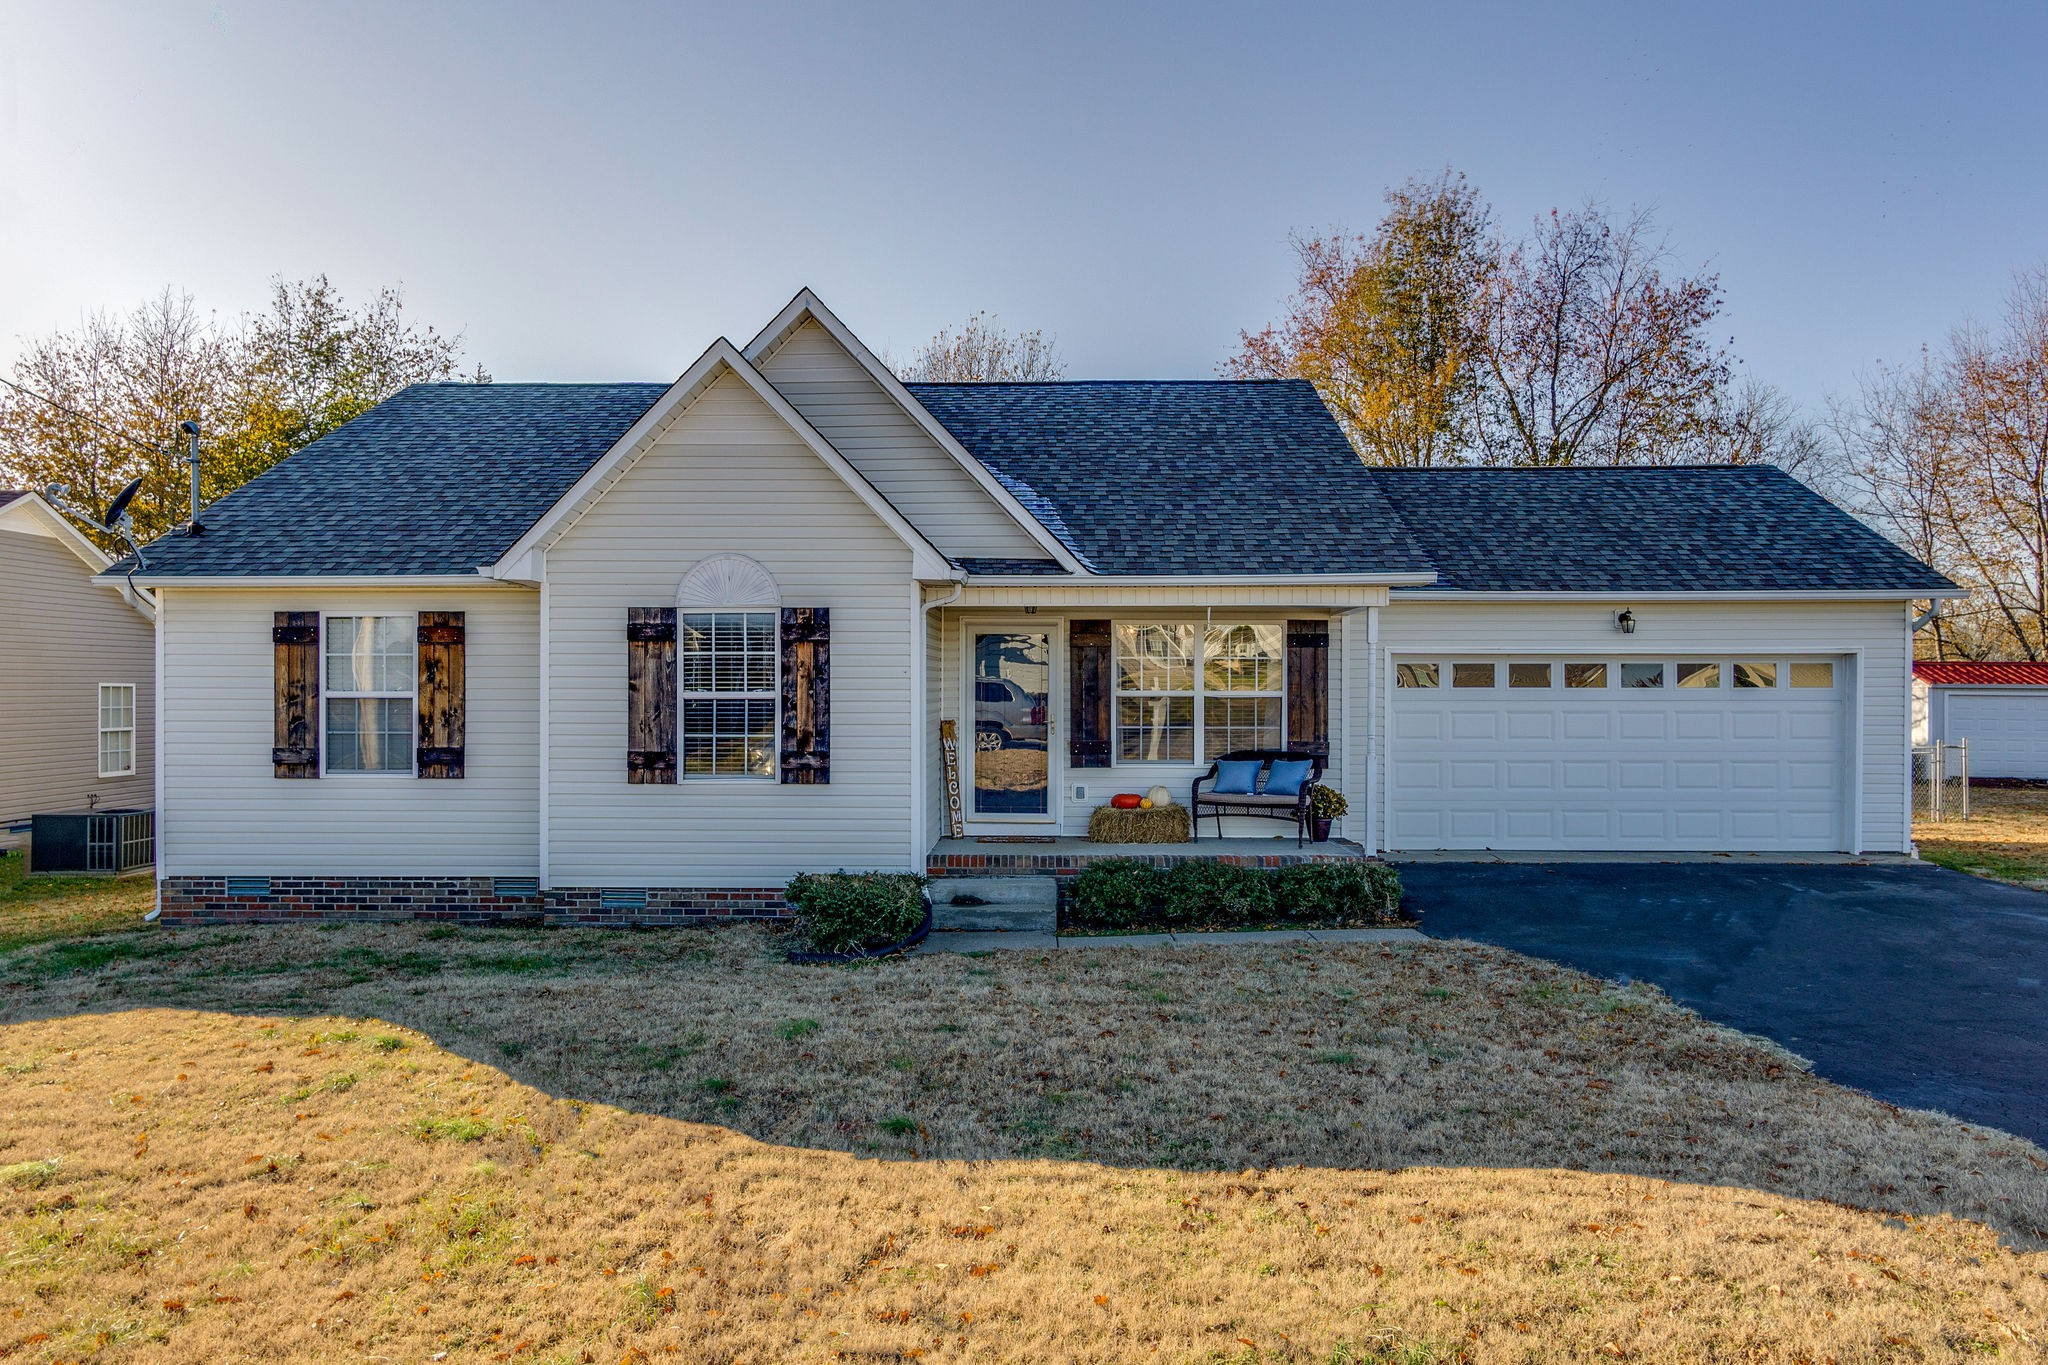 619 Austyn Ter, Columbia in Maury County County, TN 38401 Home for Sale